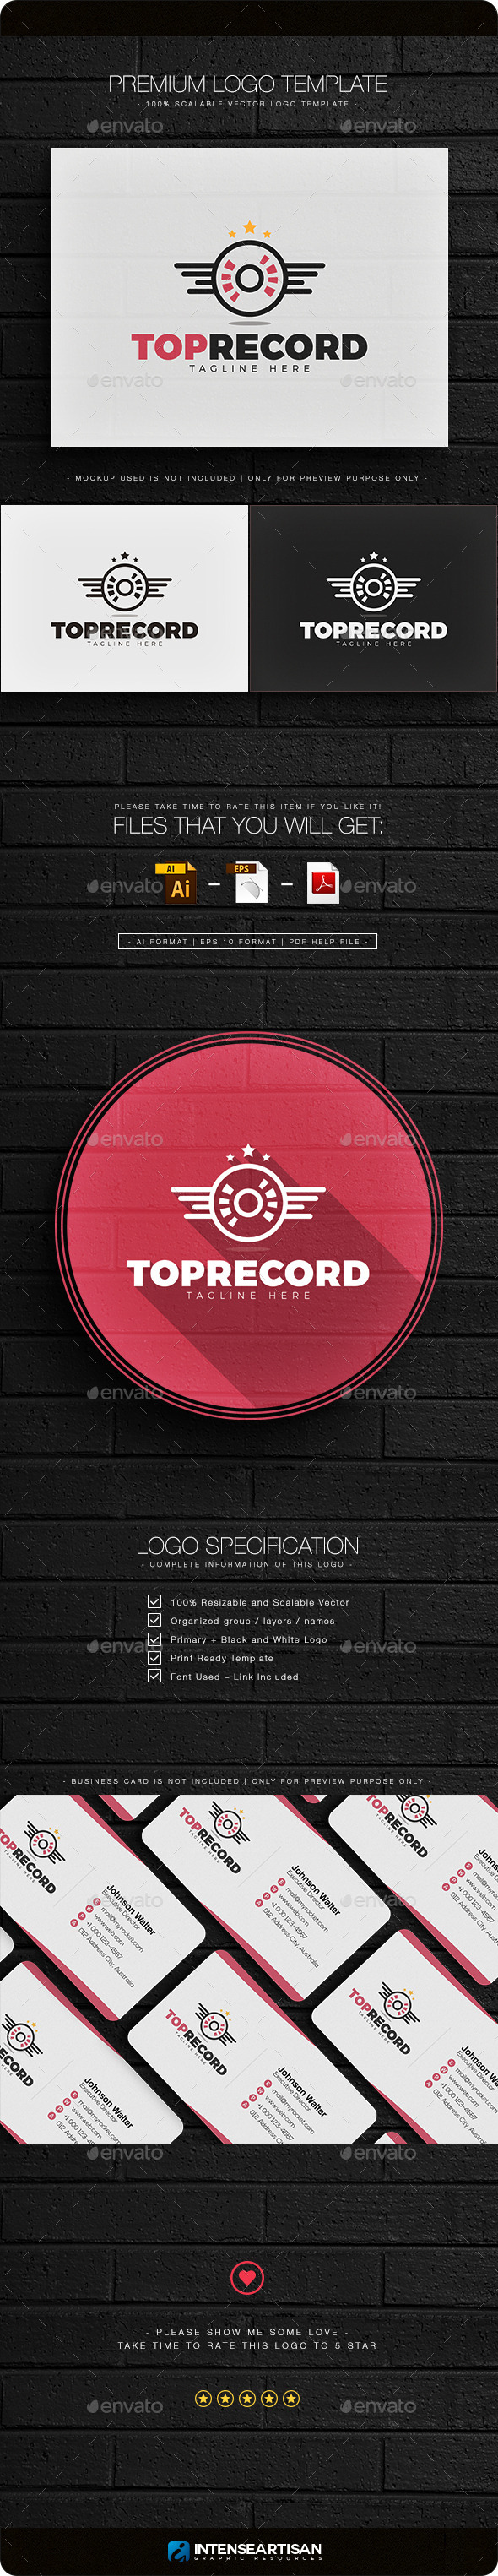 Top Record Logo - Objects Logo Templates